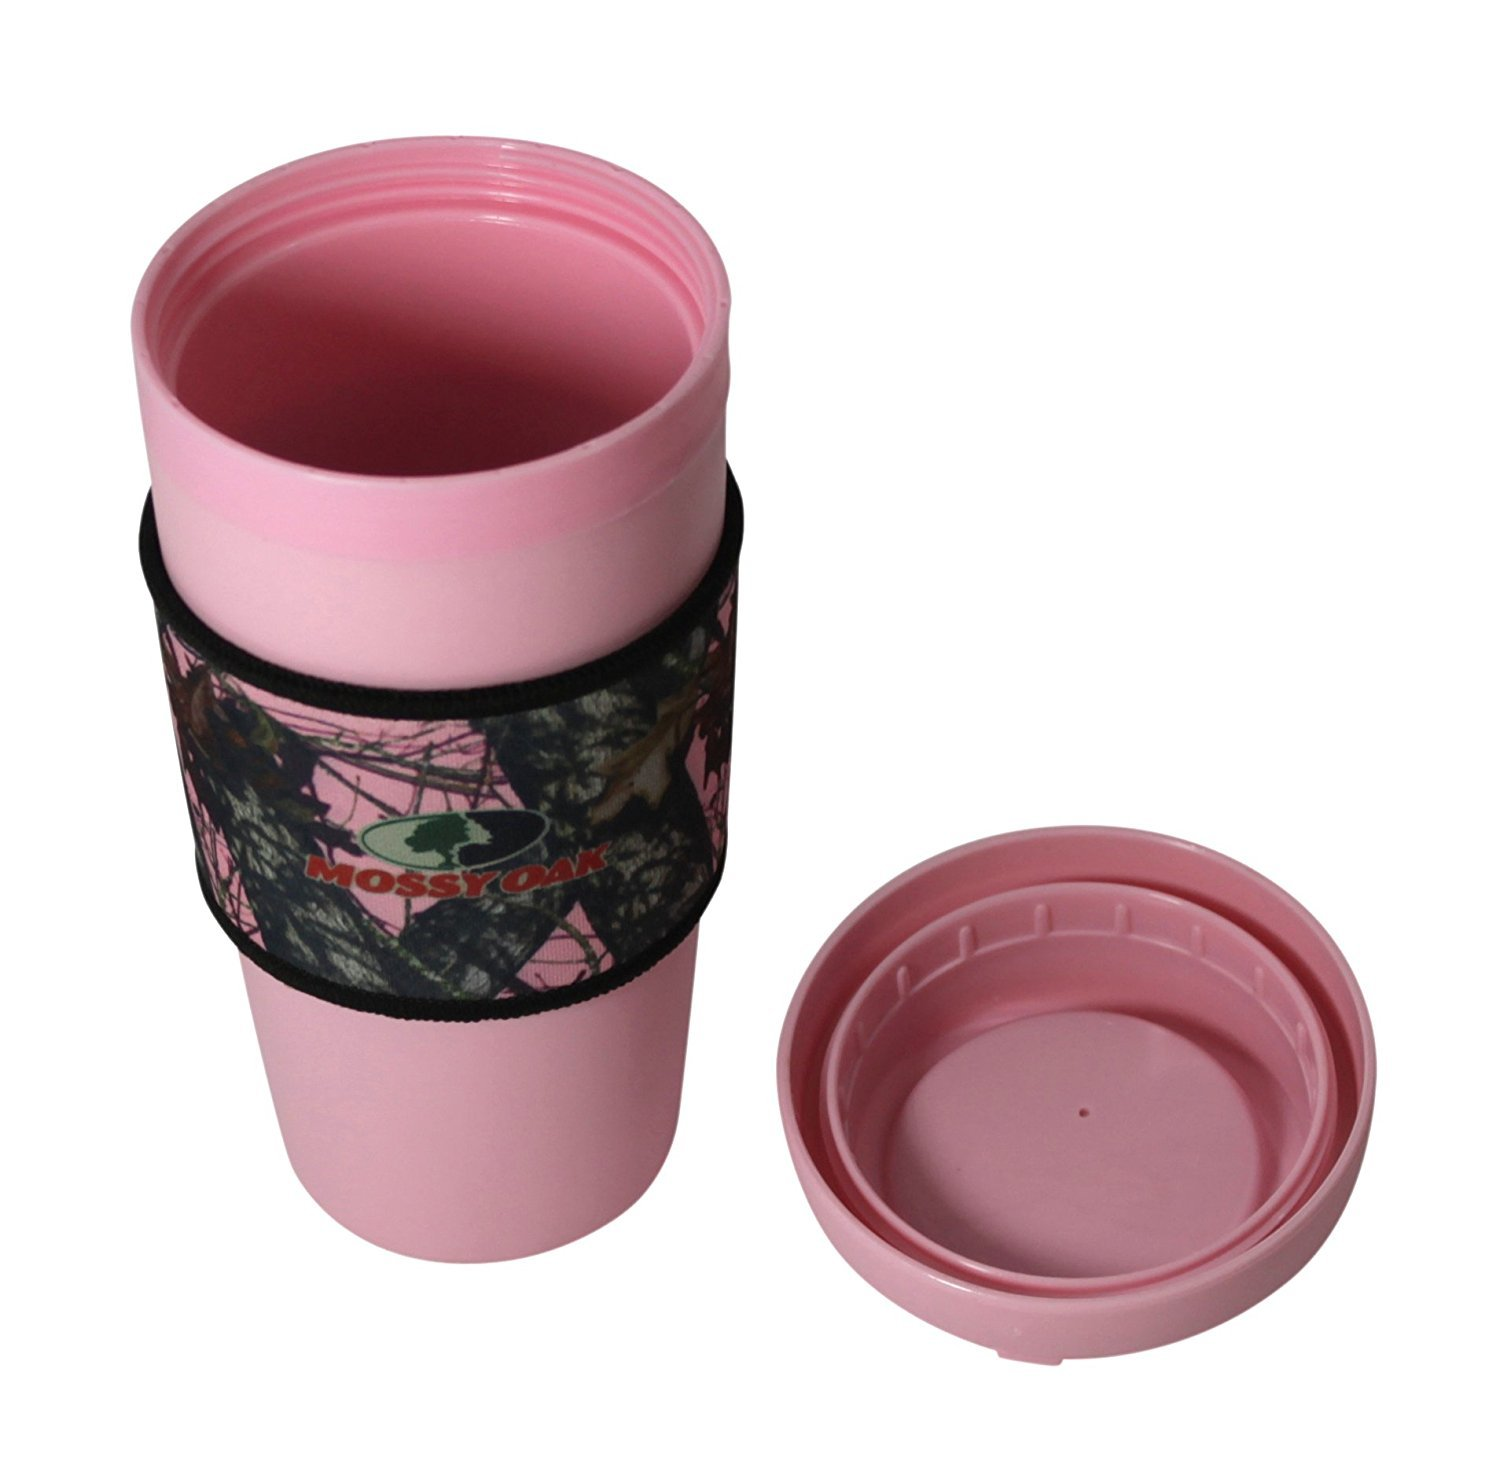 Amazon.com: Mossy Oak Bebida caliente mug- 16 oz Camo ...